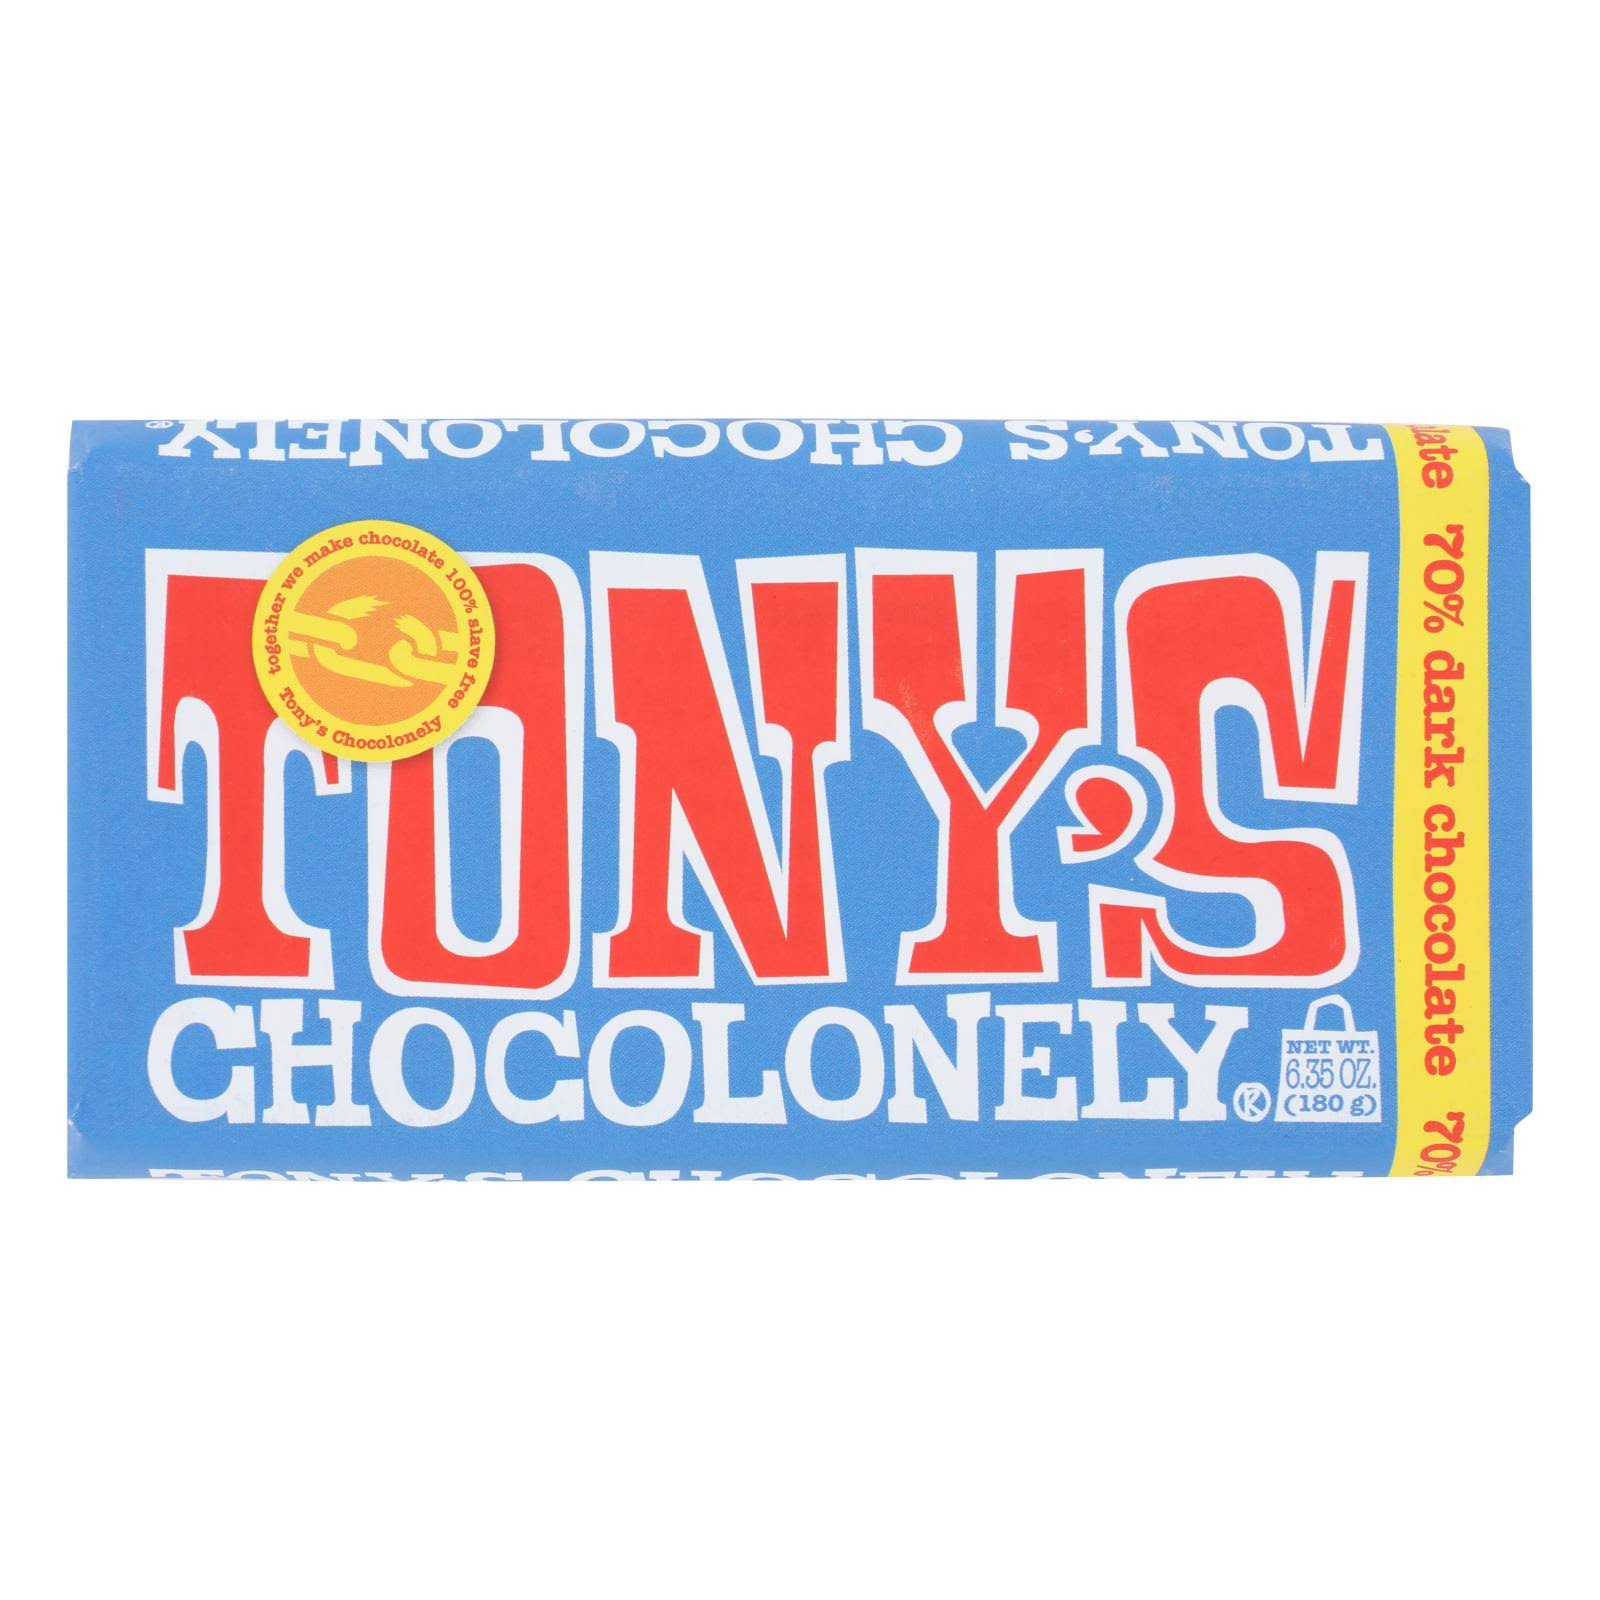 Tonys Chocolonely Dark Chocolate, 70% Cocoa - 6.35 oz